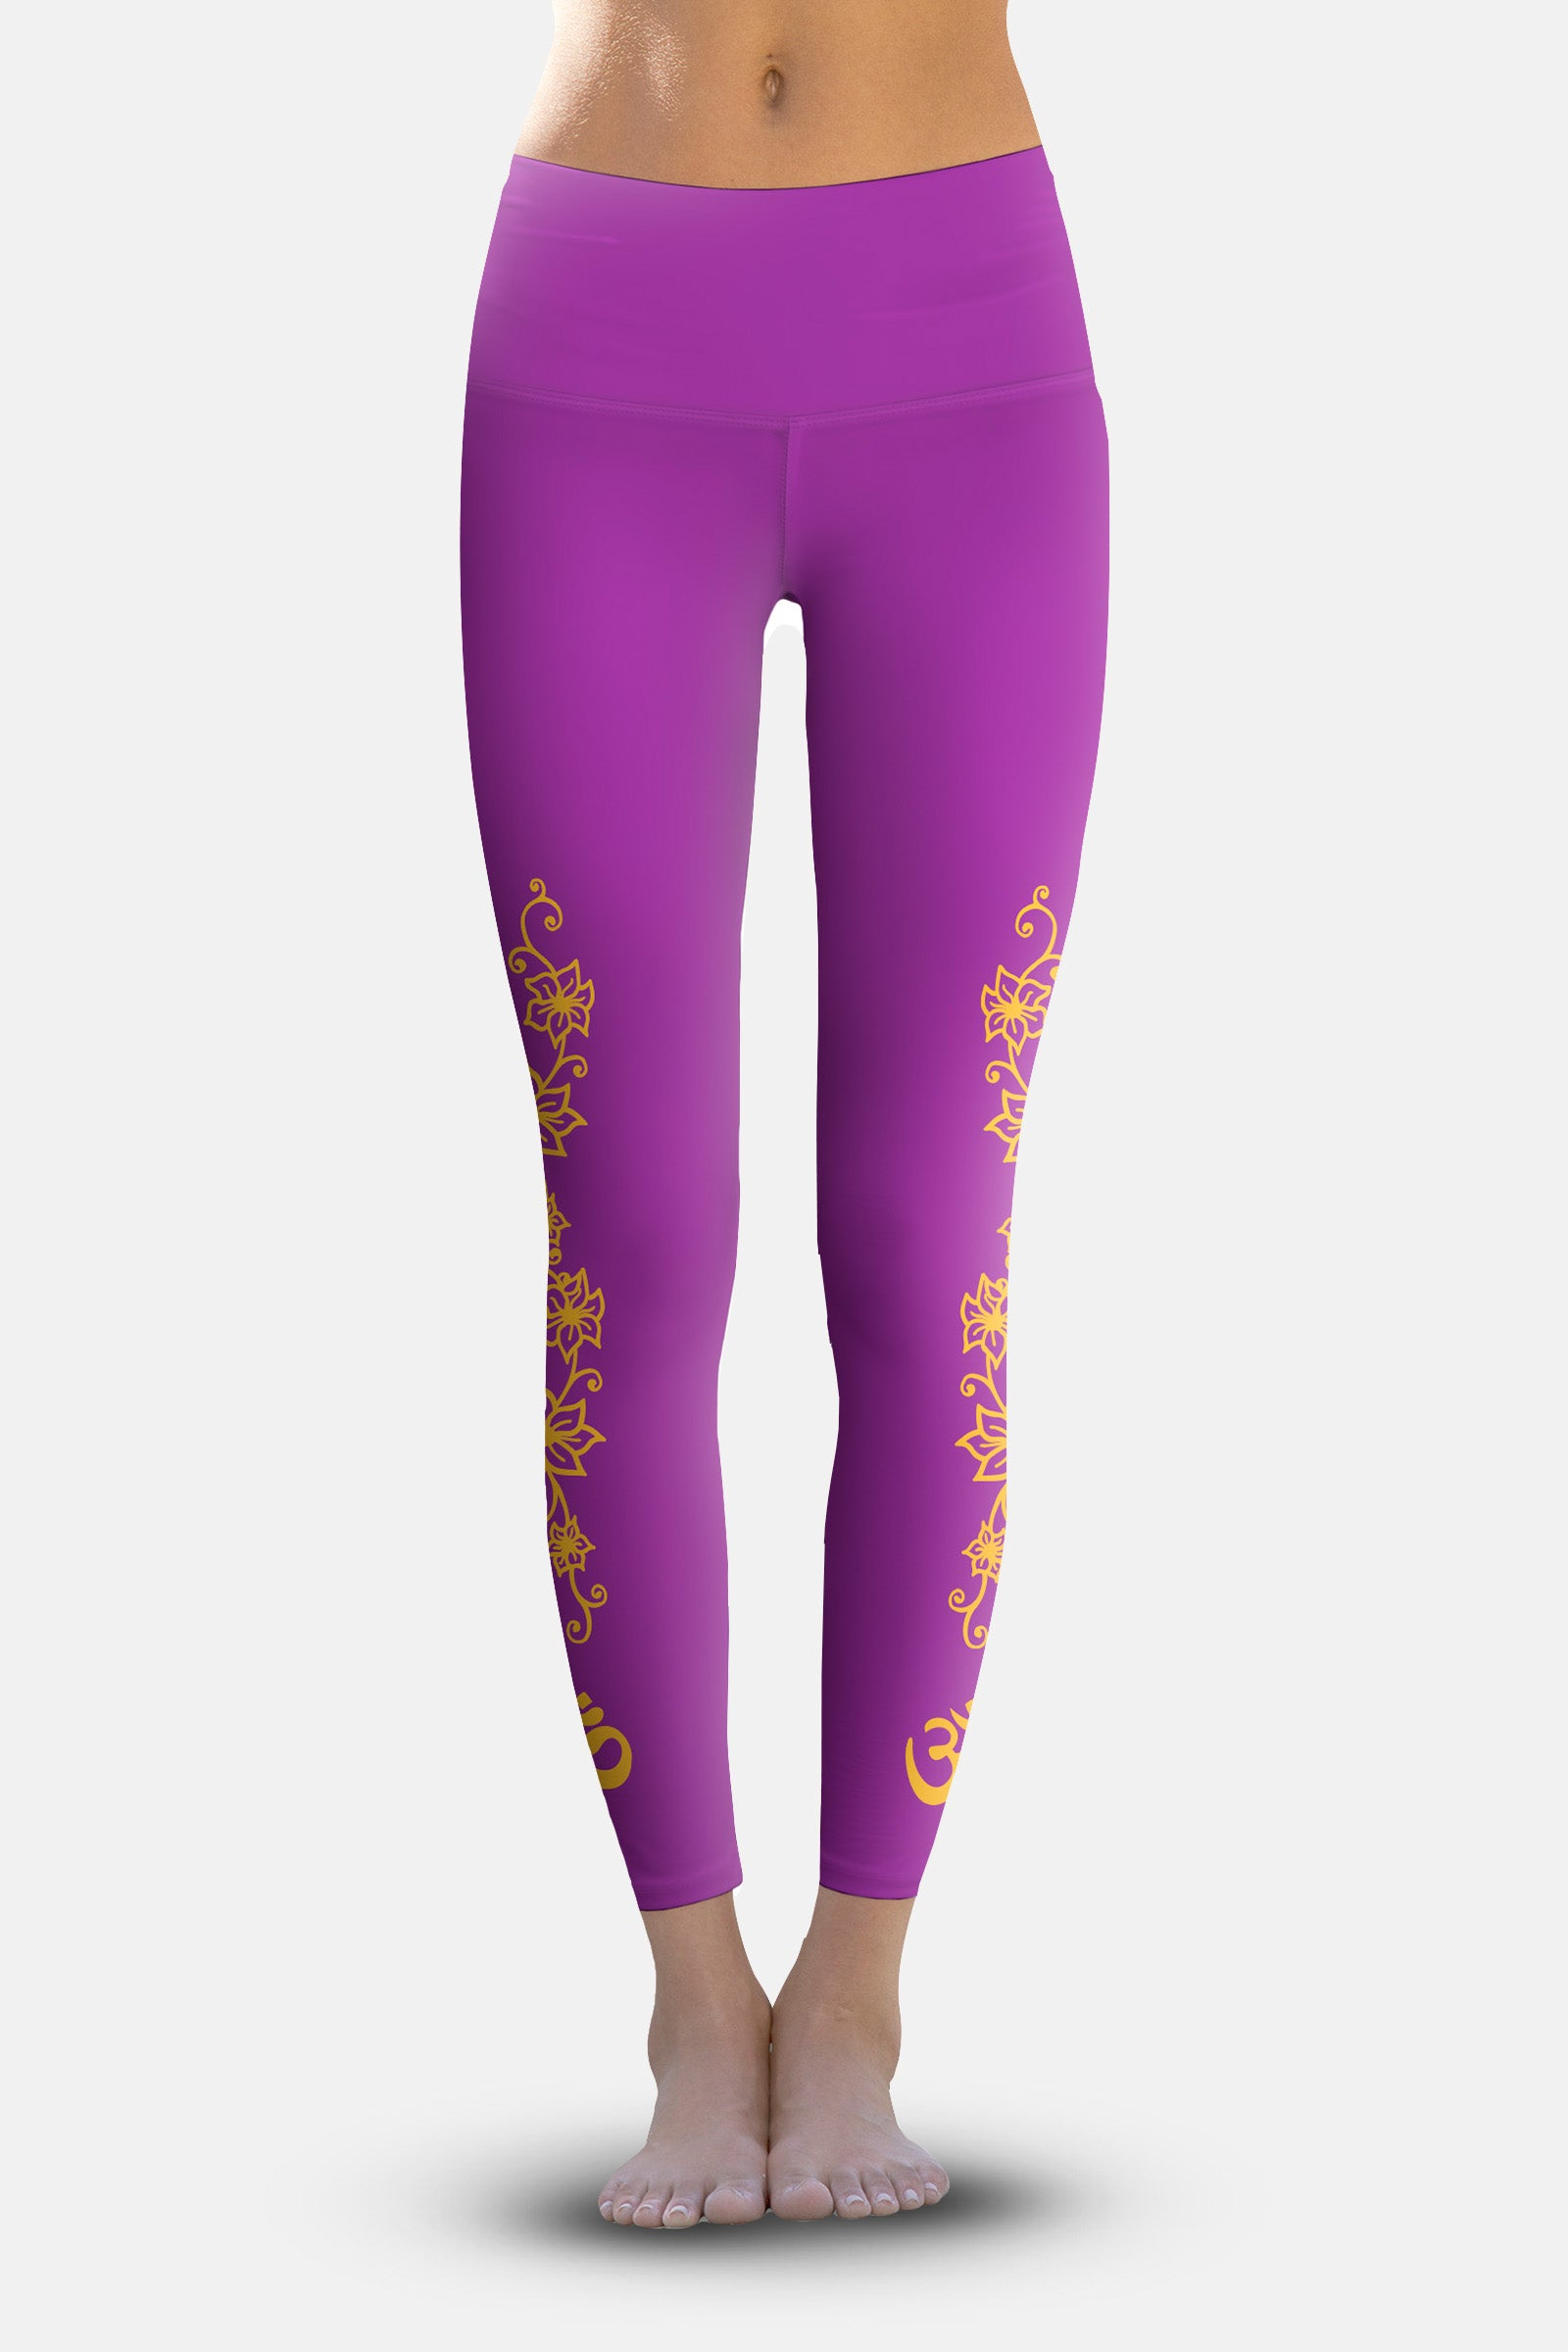 #Plum Orange Flowering Vines, Eco-Friendly Active Performance Leggings